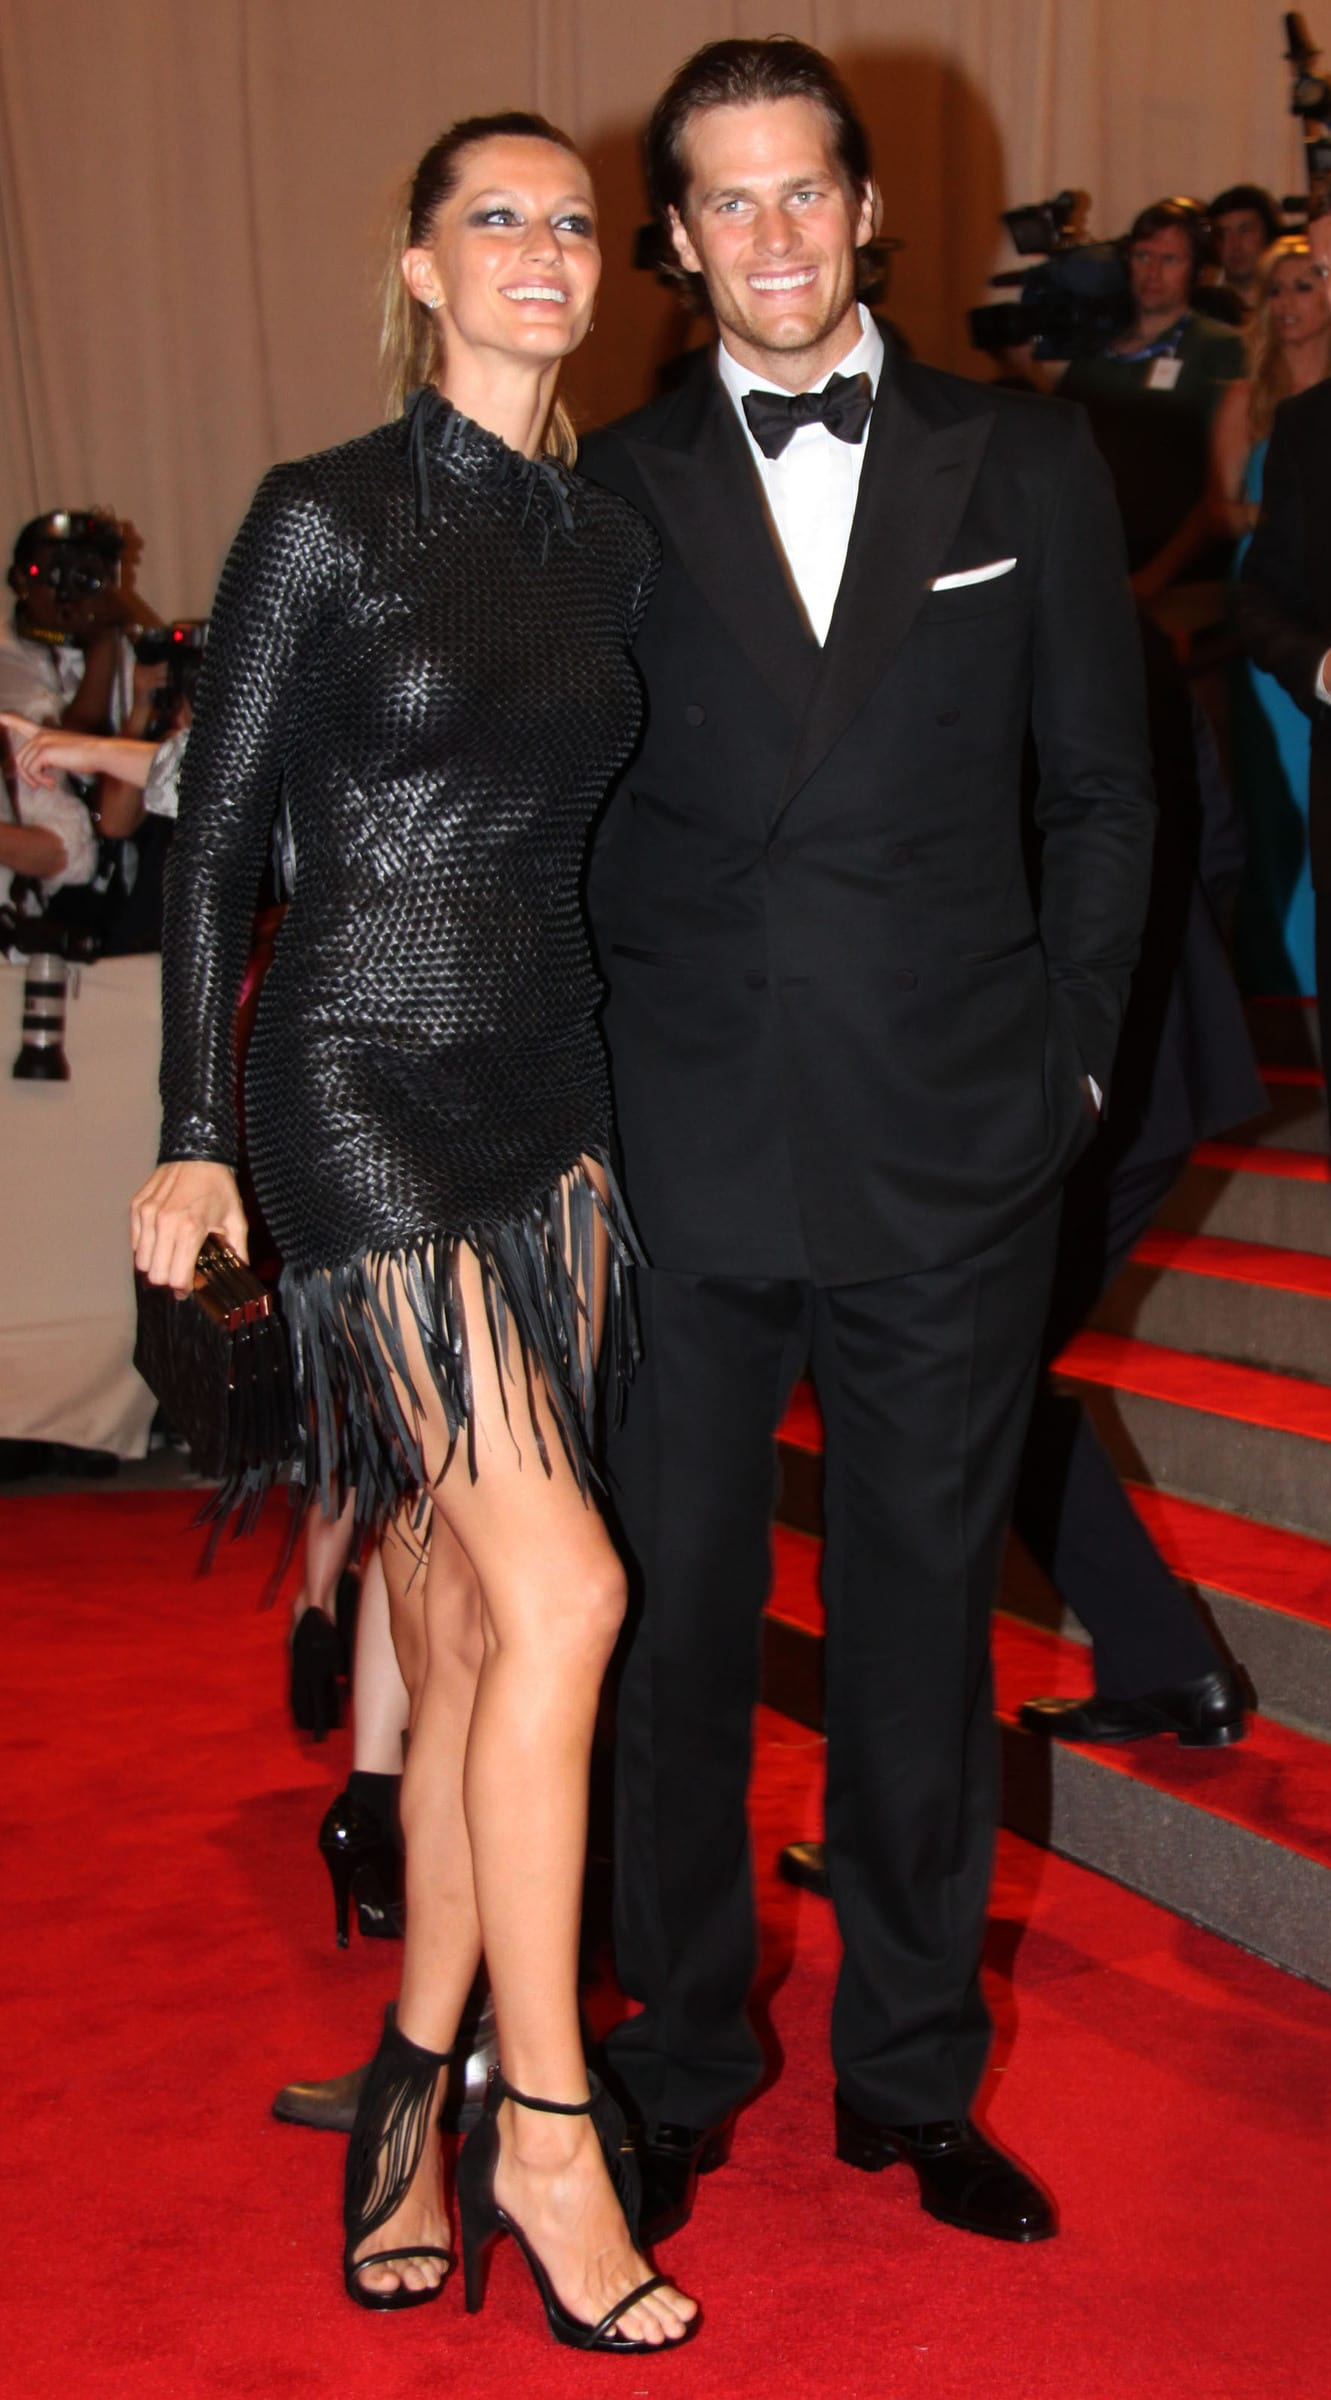 Report Tom Brady And Gisele Bundchen Not Engaged The Hollywood